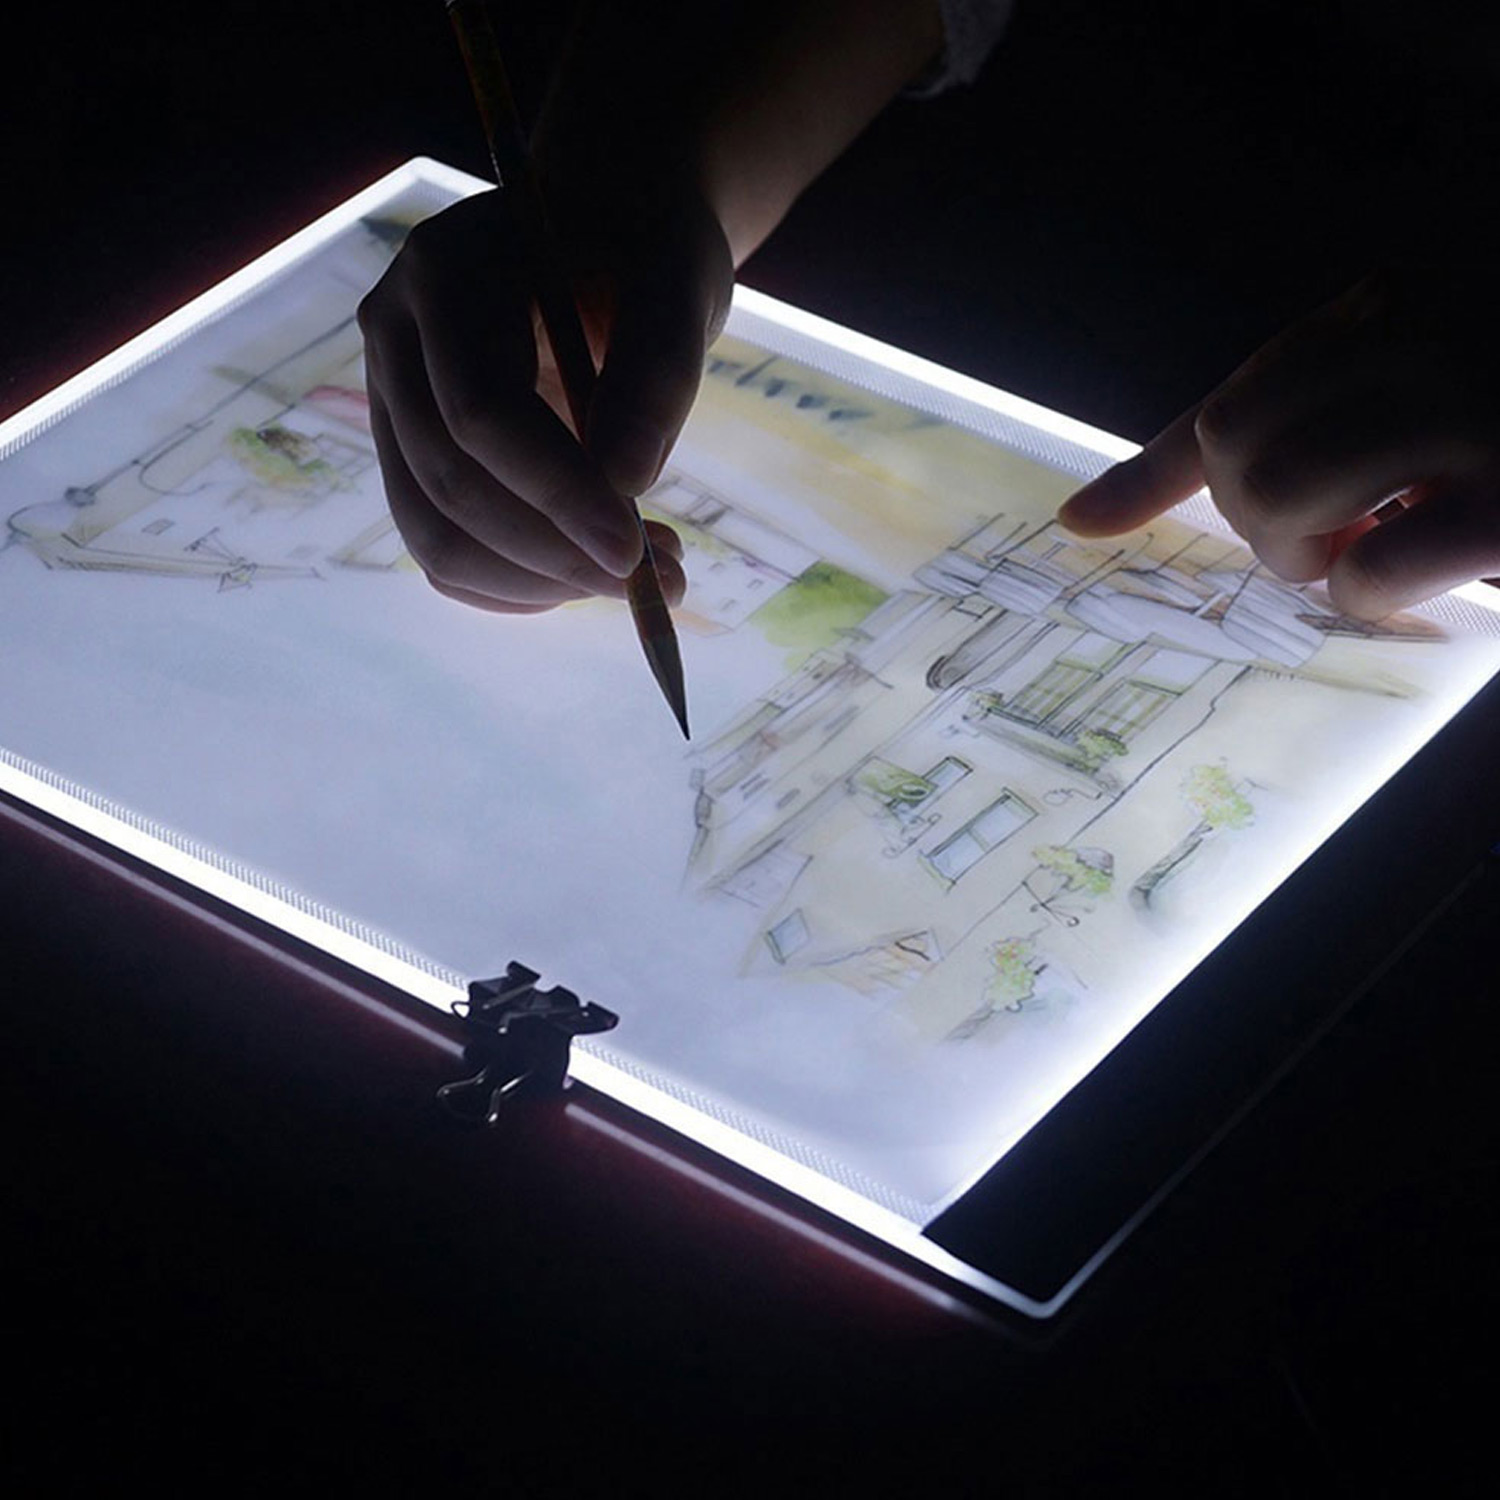 A4 Ultra-Thin Portable LED Light Box Dimmable Brightness USB Power Tracing Light Pad Board for Office  Home Drawing Sketching